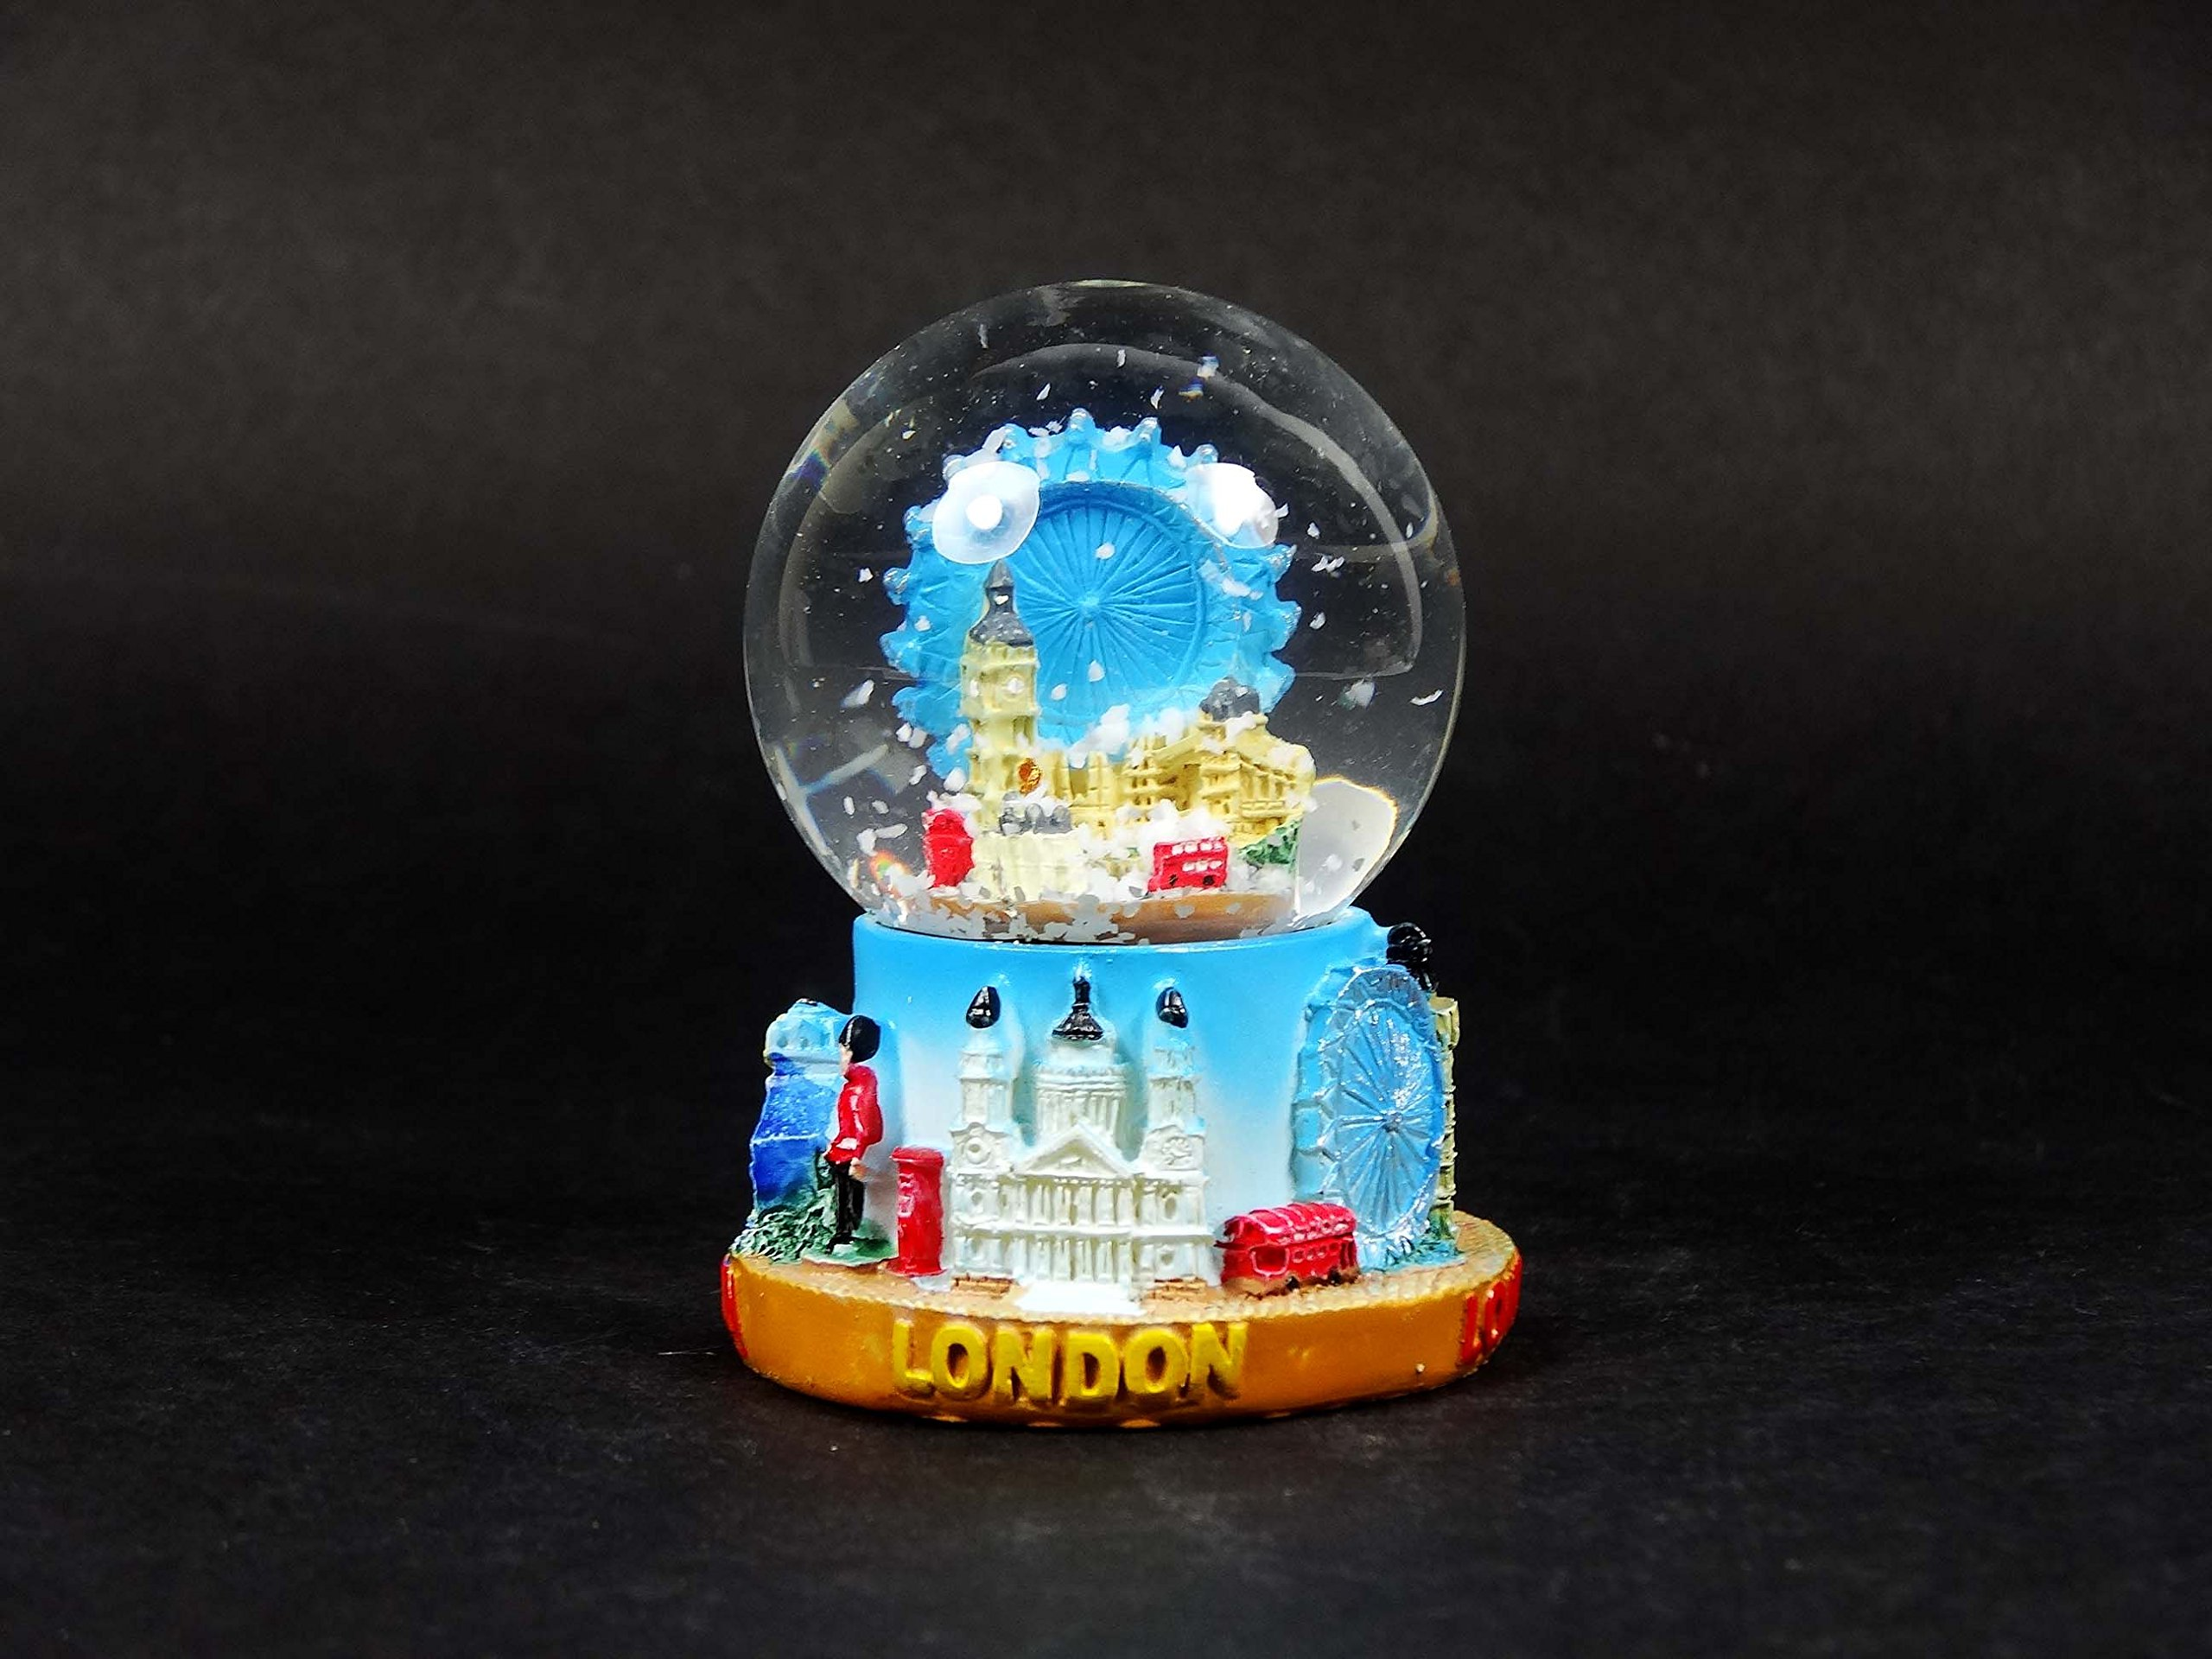 Snow Globe (Small)- Composite, Detailing Famous London Landmarks Including Big Ben, London Eye and Tower Bridge.